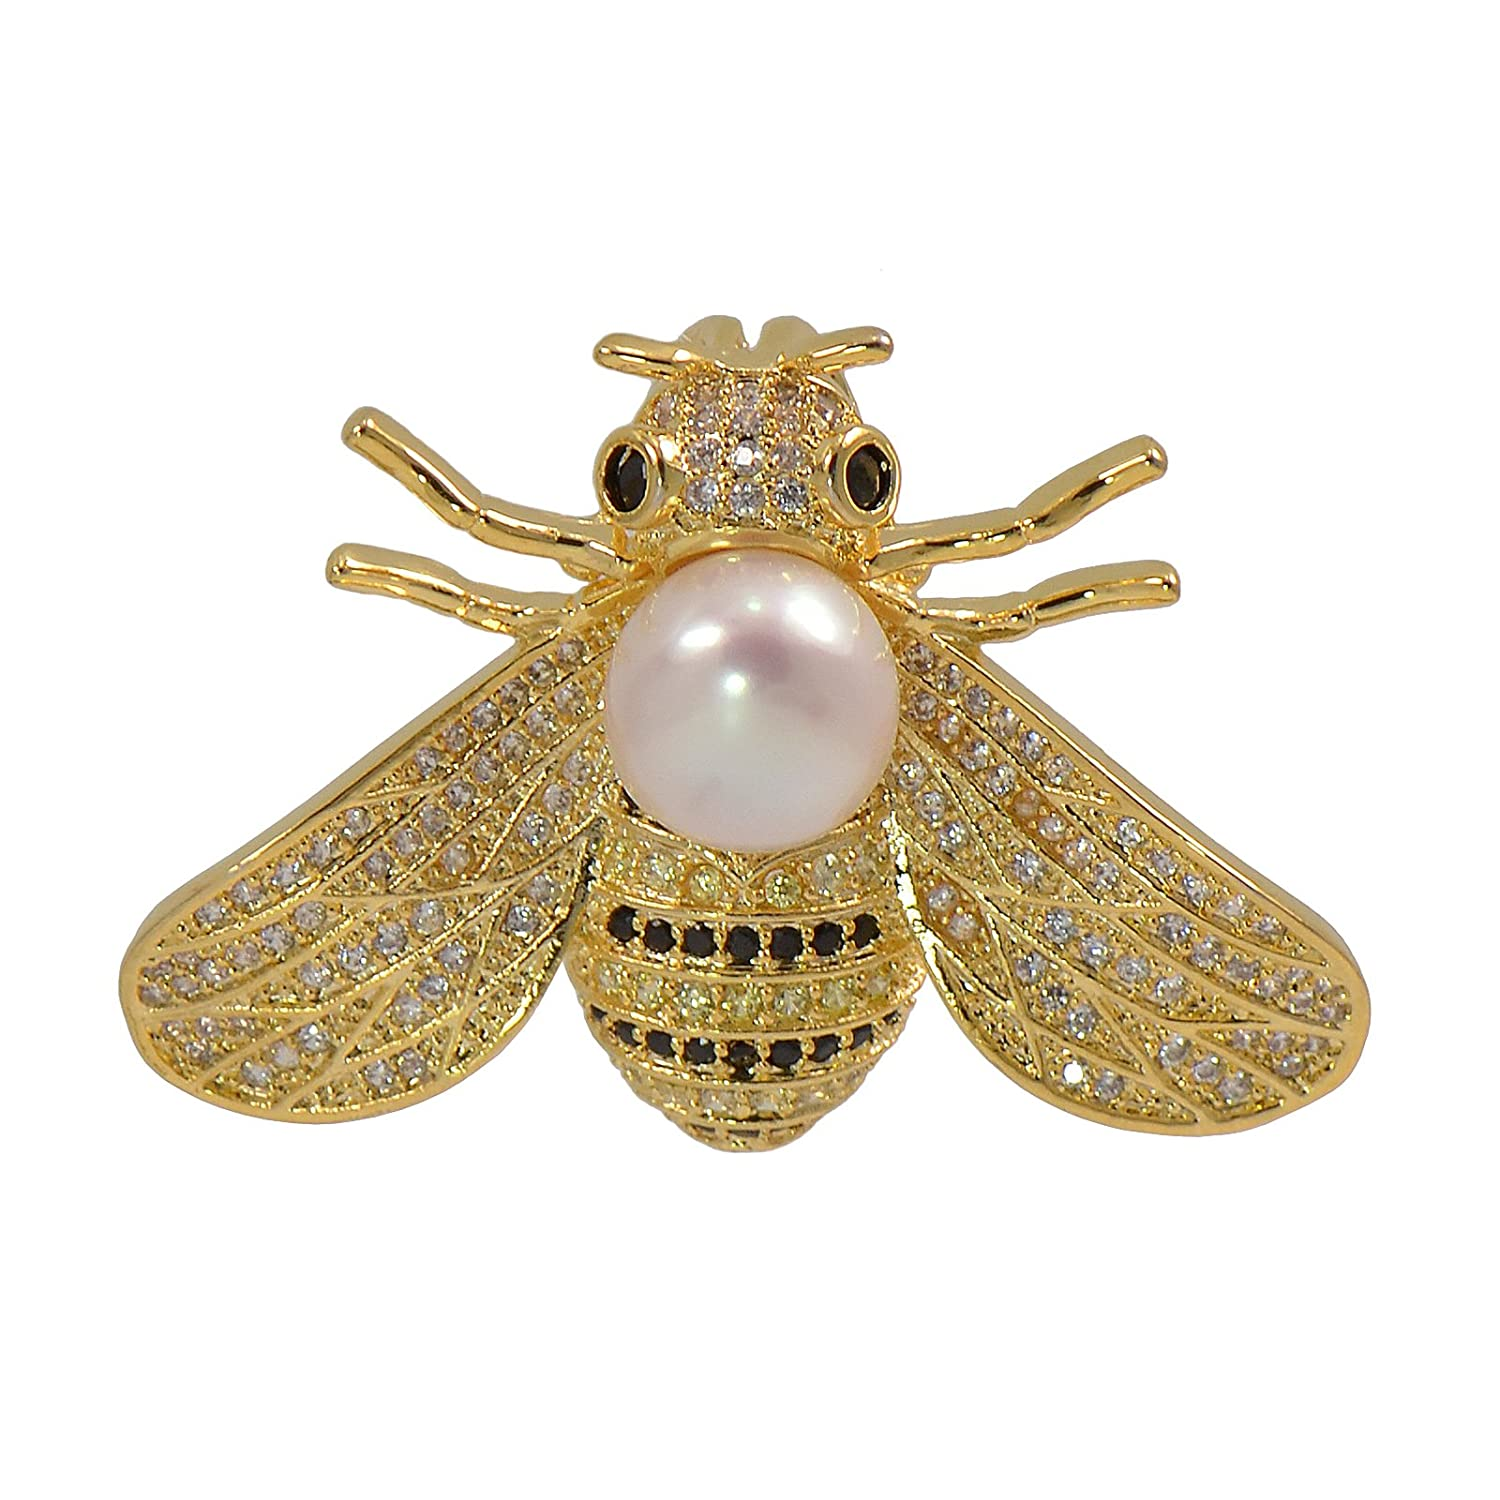 Paialco 8-9MM Cultured Freshwater Pearl Cubic Zirconia Delicate Bee Brooch Pin, Yellow Gold Tone JOSEPH & CO JHW1001YLWH